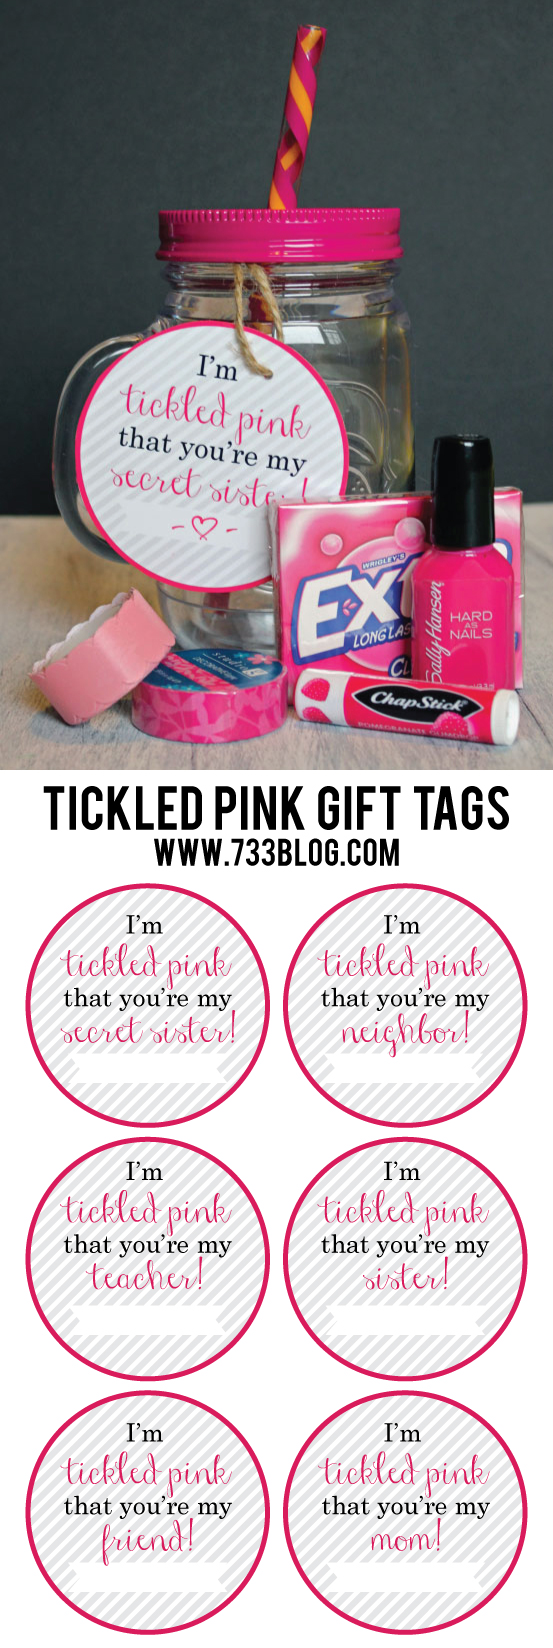 Tickled Pink Gift Idea Inspiration Made Simple